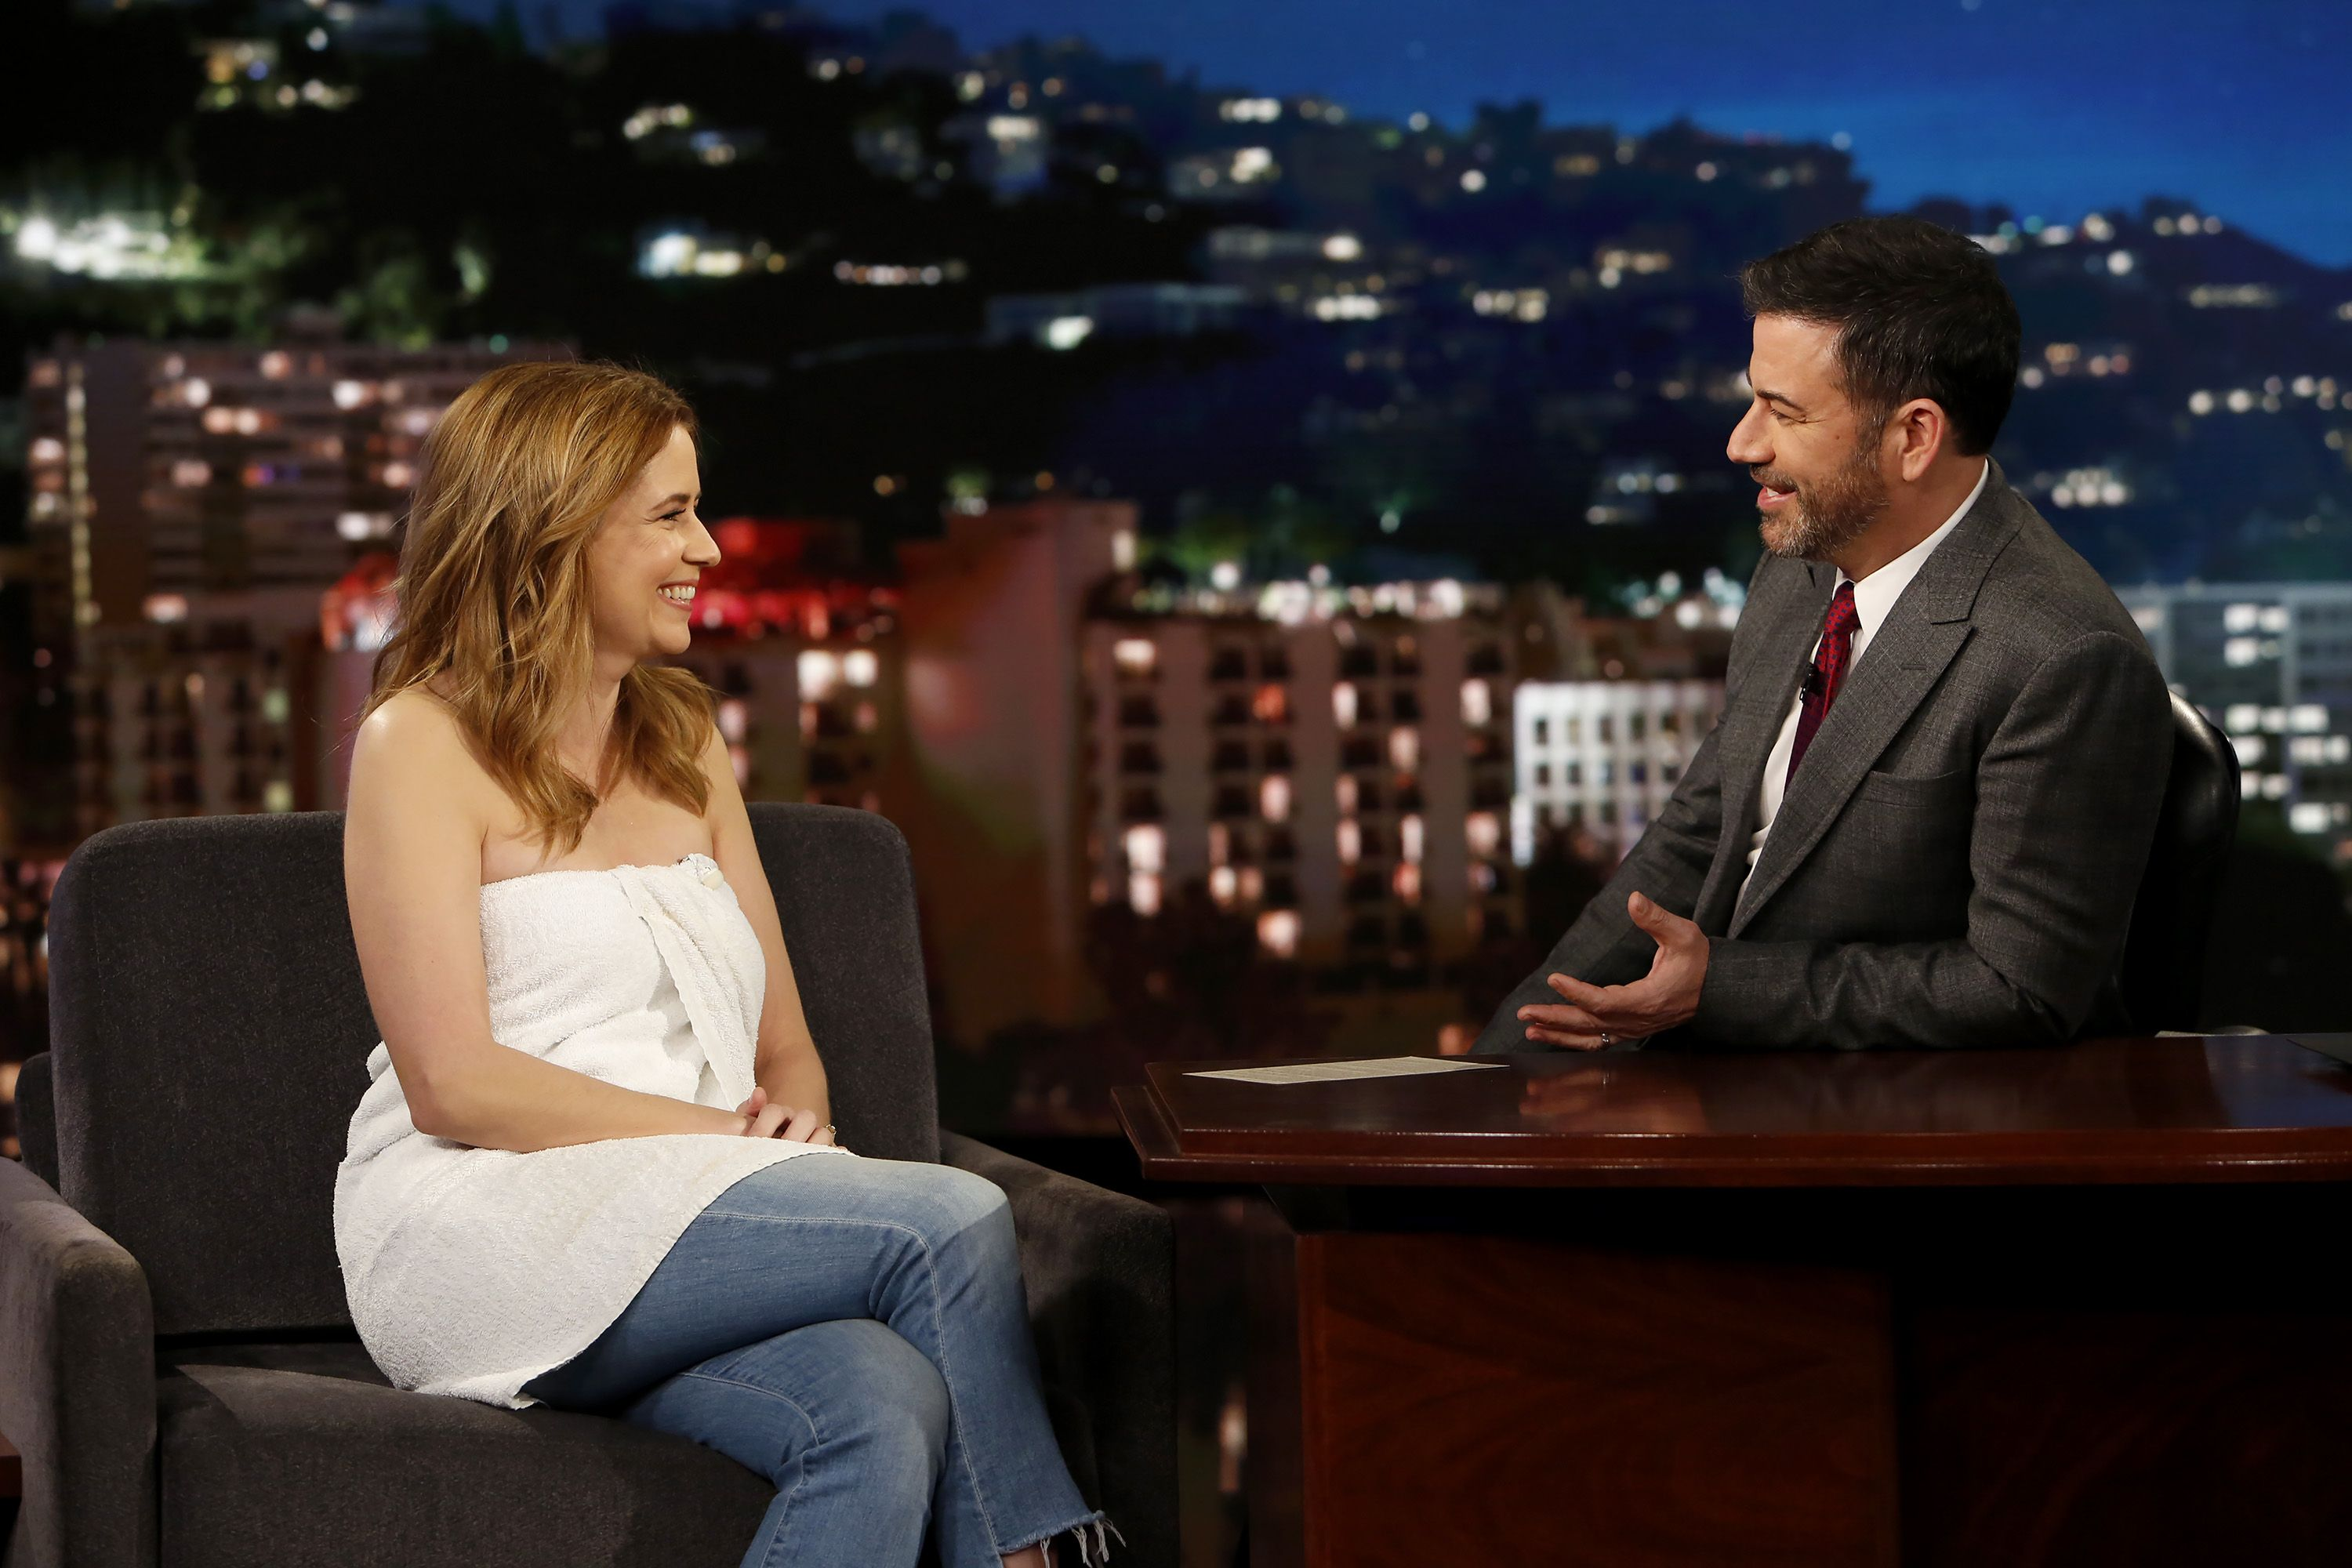 Jenna Fischer wore a towel on Jimmy Kimmel because the zip on her dress  broke